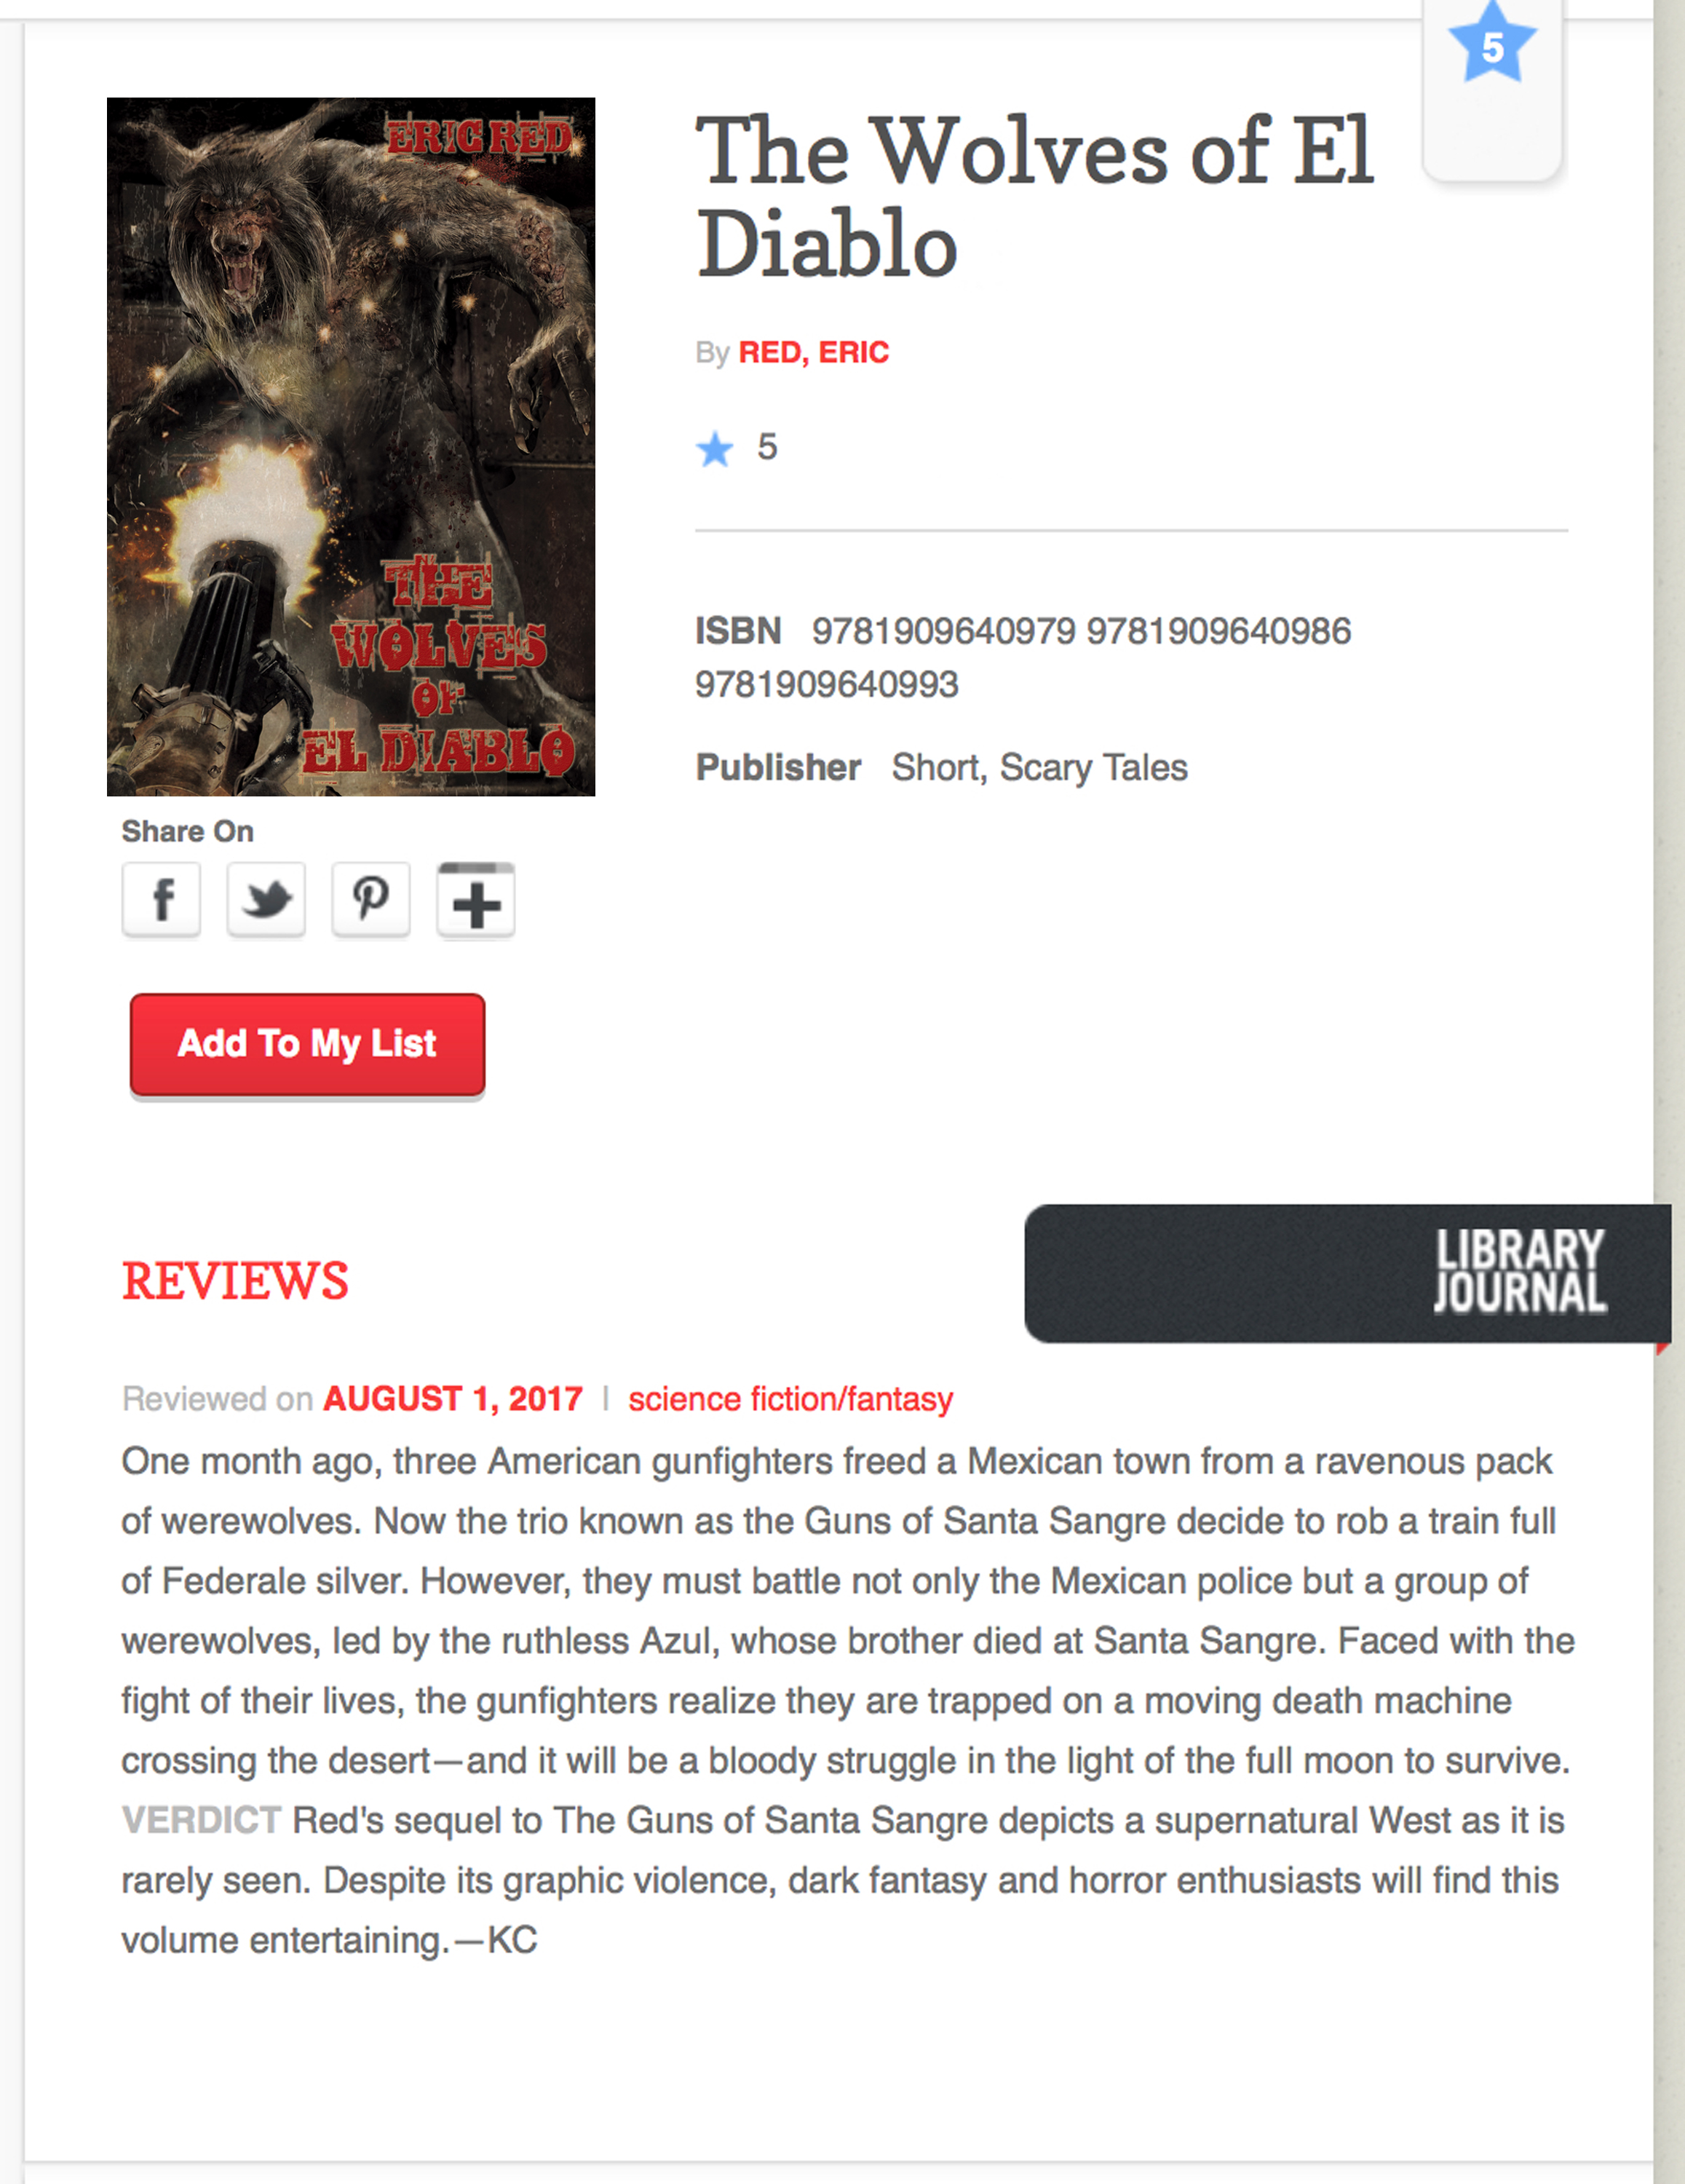 THE WOLVES OF EL DIABLO - Library Journal review.2